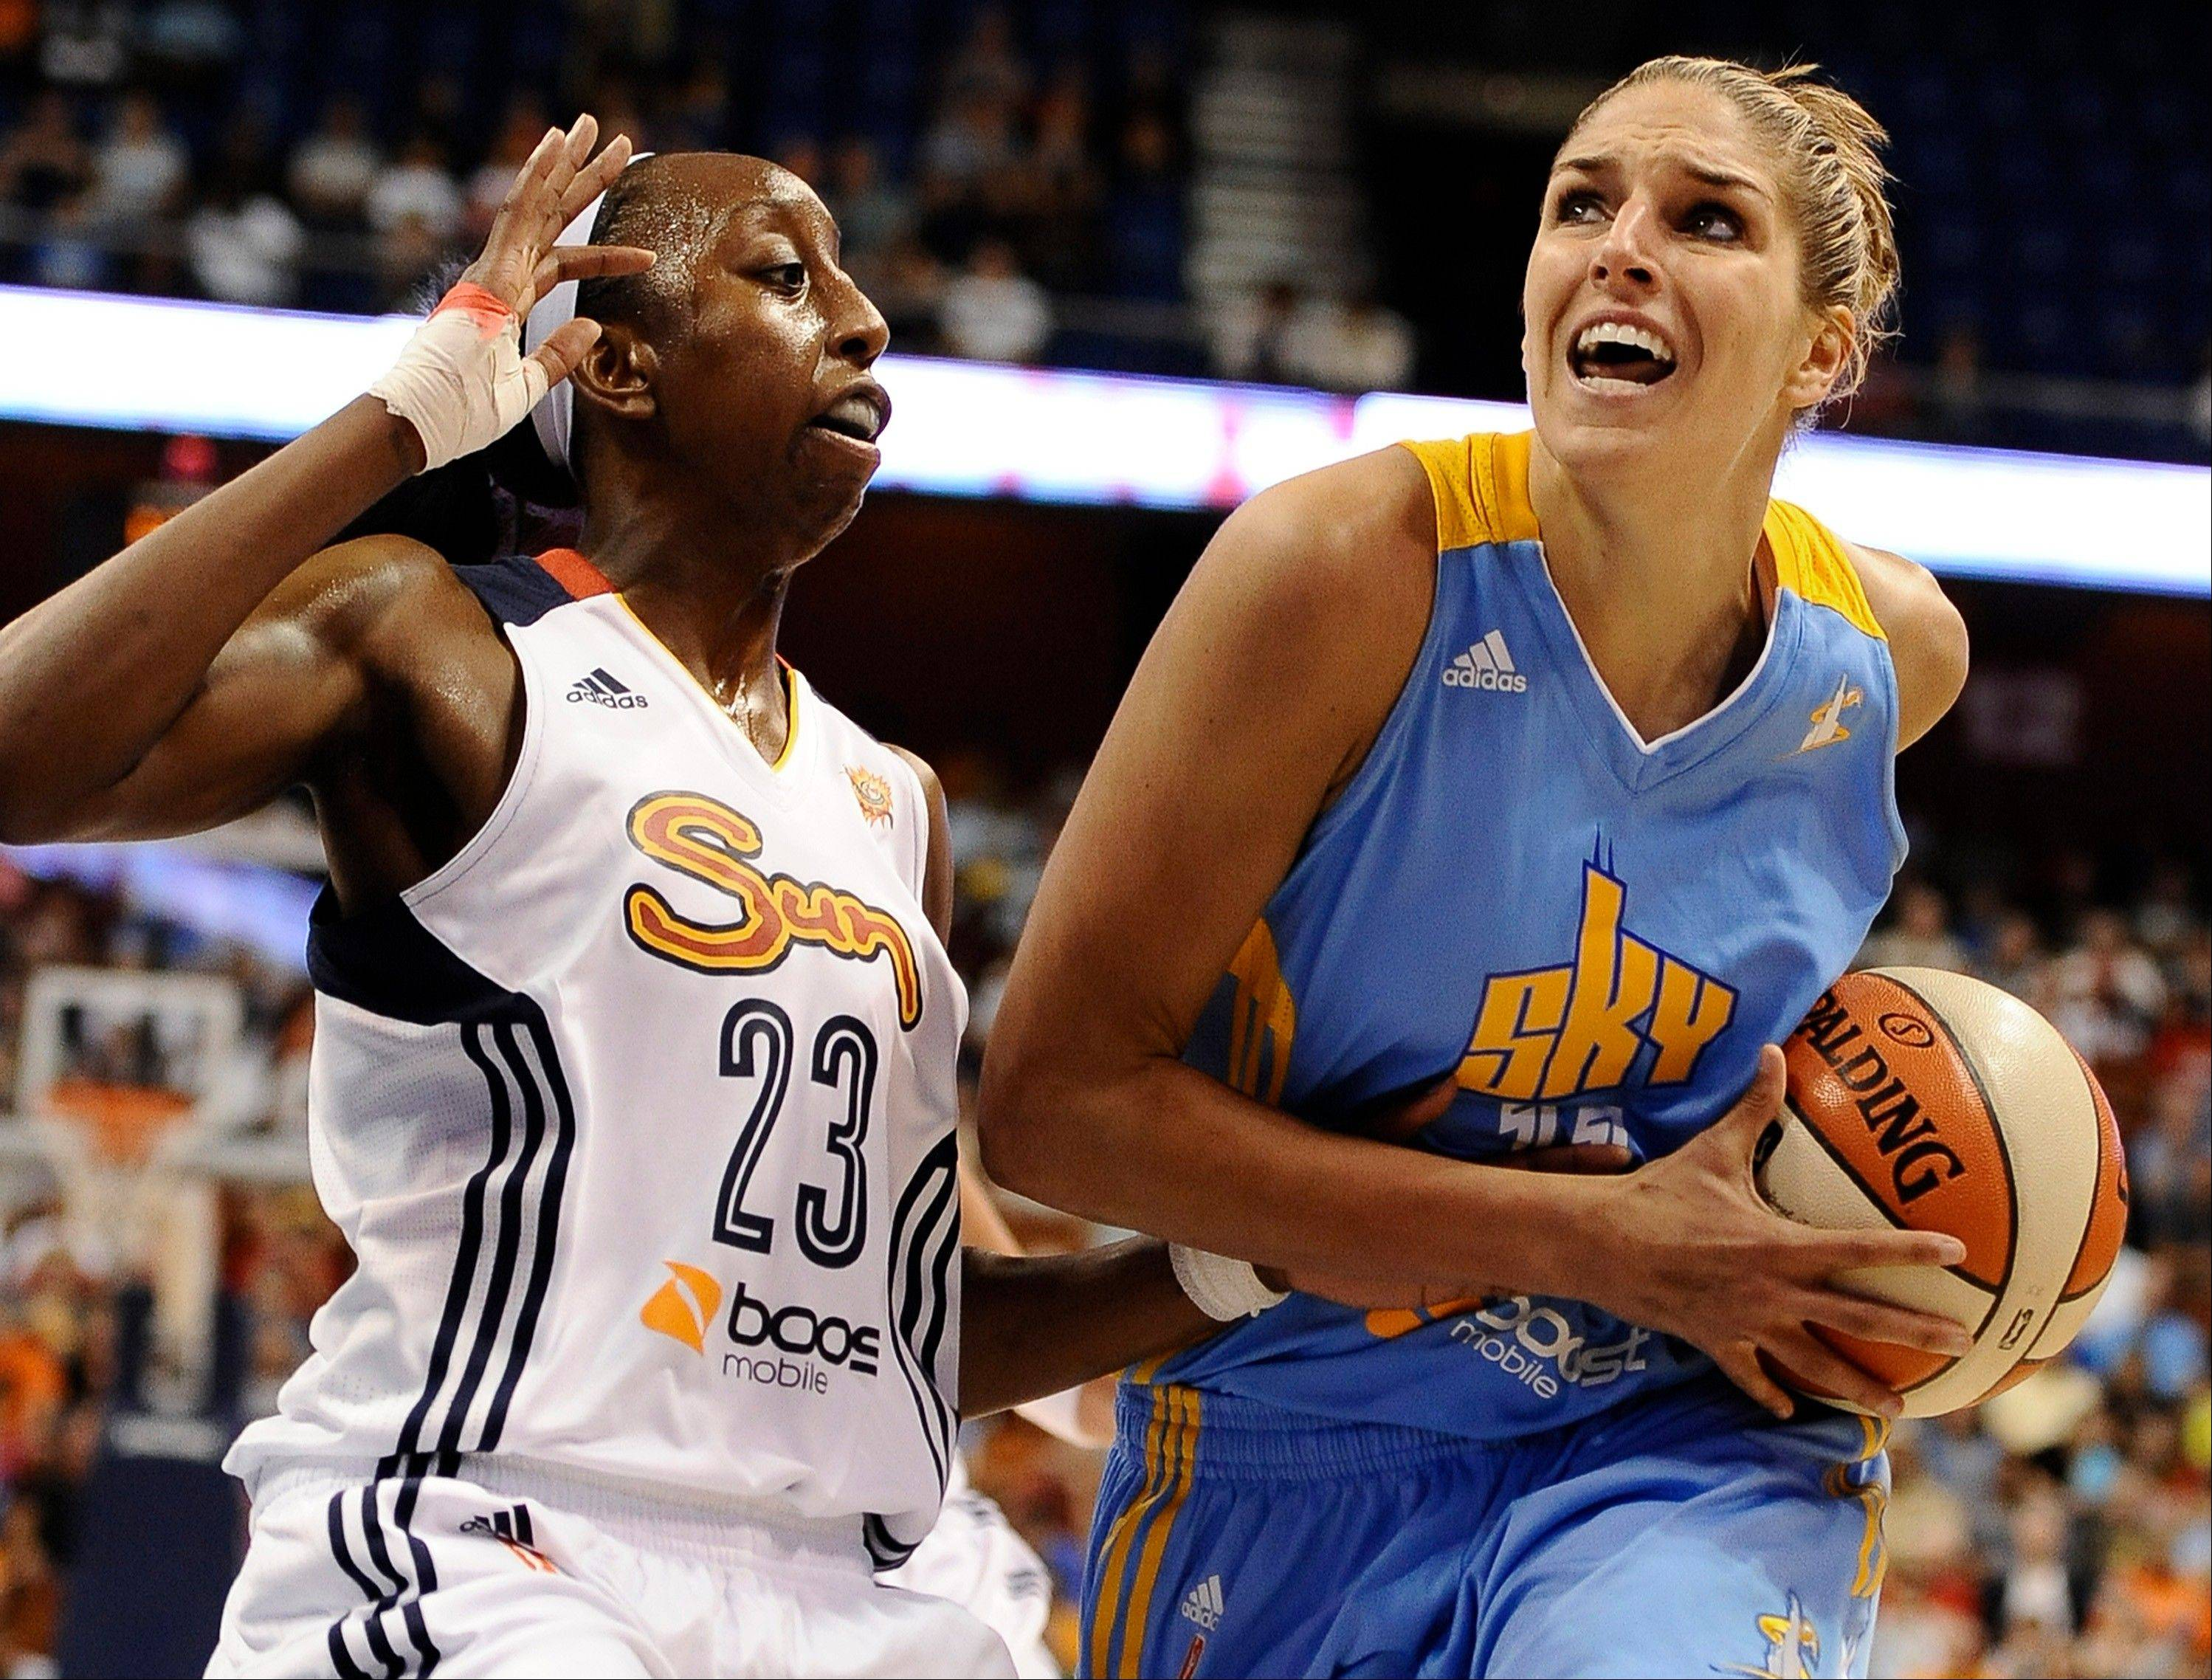 Chicago Sky's Elena Delle Donne, right, won't play in Saturday's WNBA All-Star Game after suffering a concussion on Wednesday. Delle Donne is the first WNBA rookie to lead the fan voting for the contest.